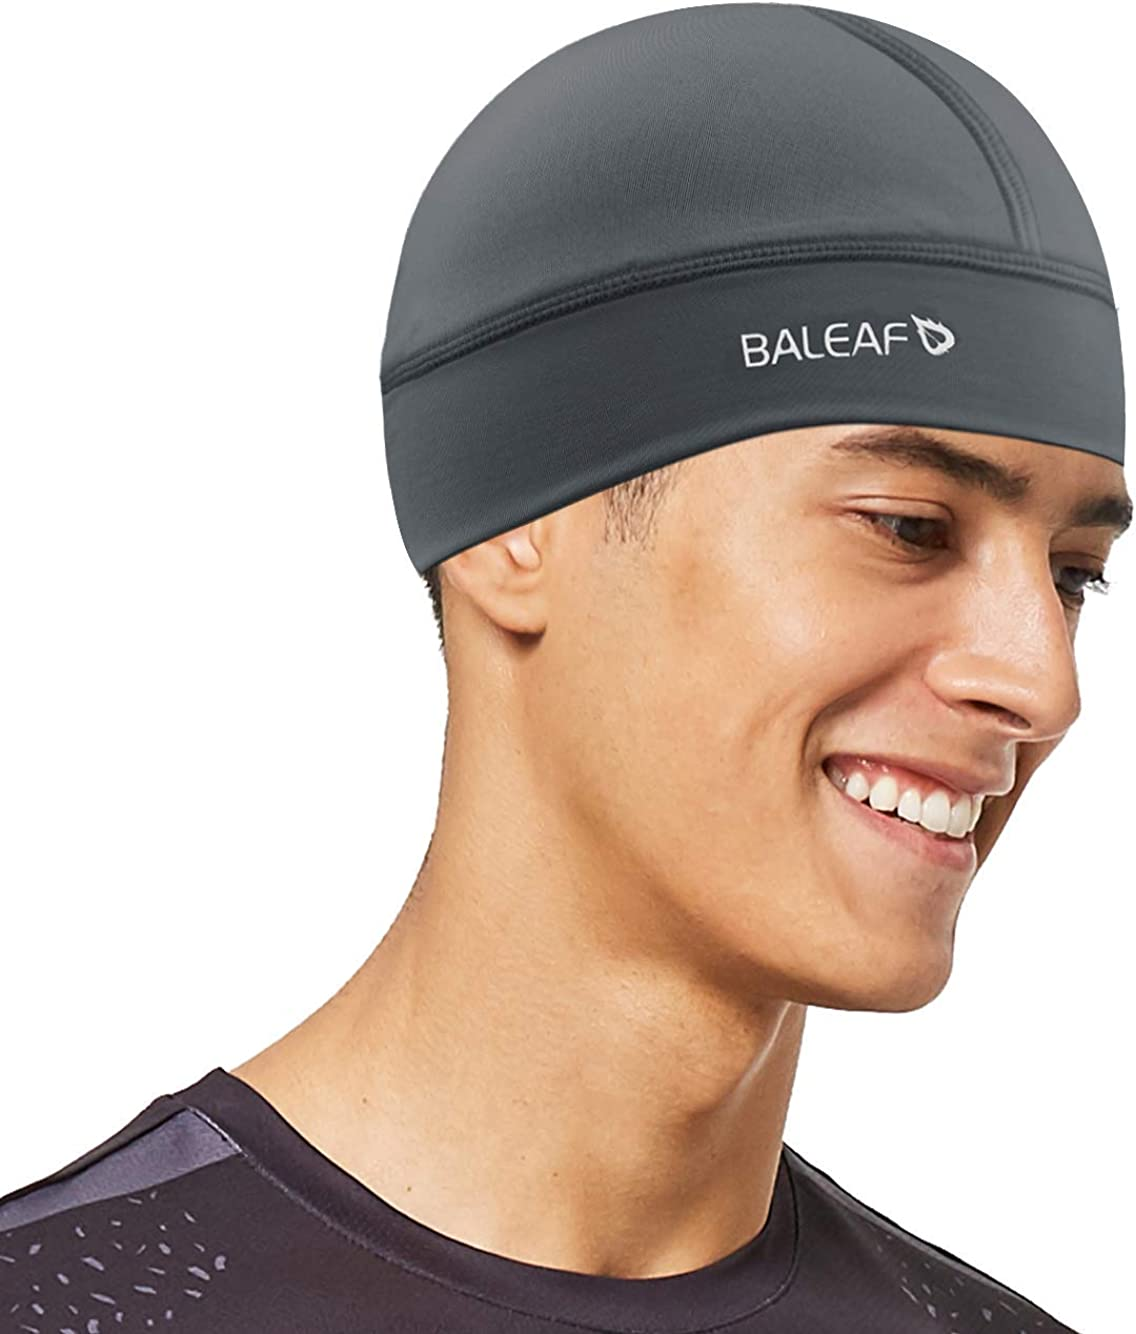 BALEAF Cycling Unisex Cooling Skull Cap Helmet Liner Bicycle Biking Running for Men Women UPF 50+